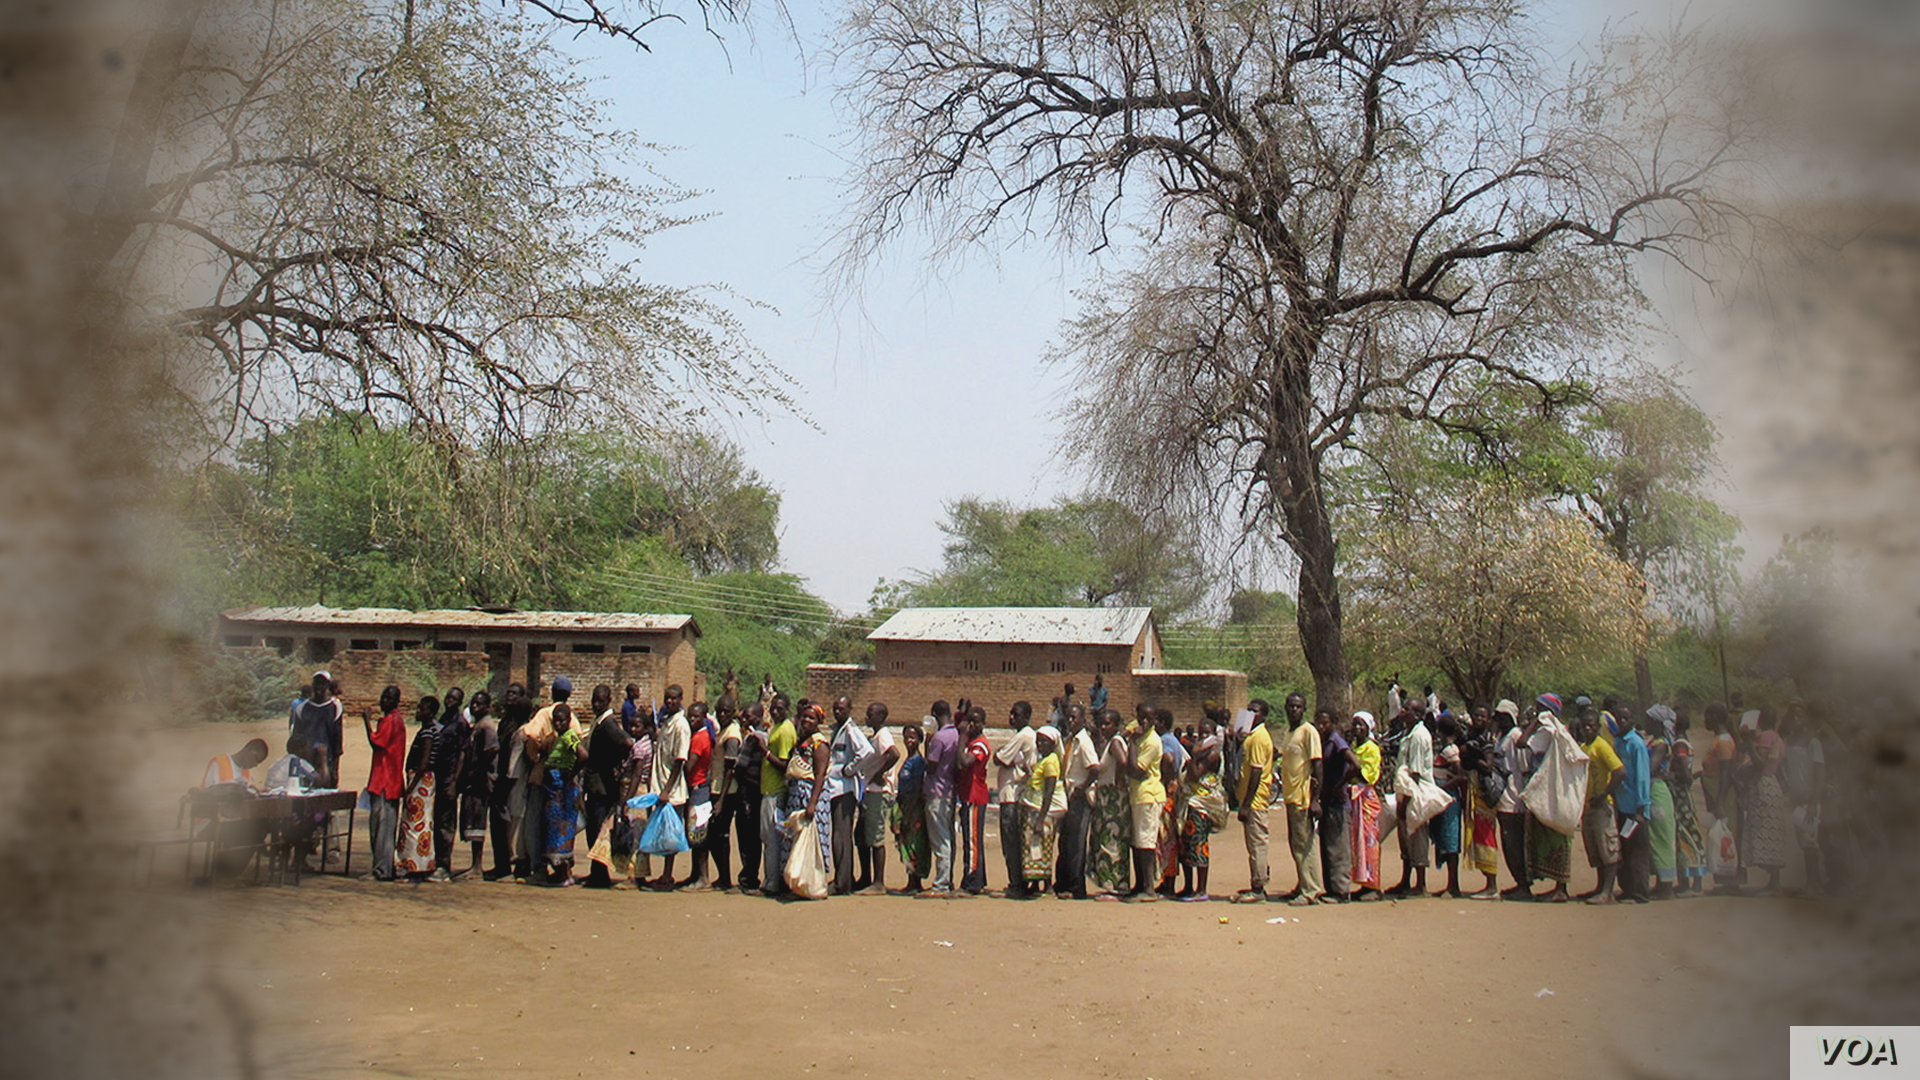 The line is long at a food-distribution site in Malawi. (Credit: WFP)